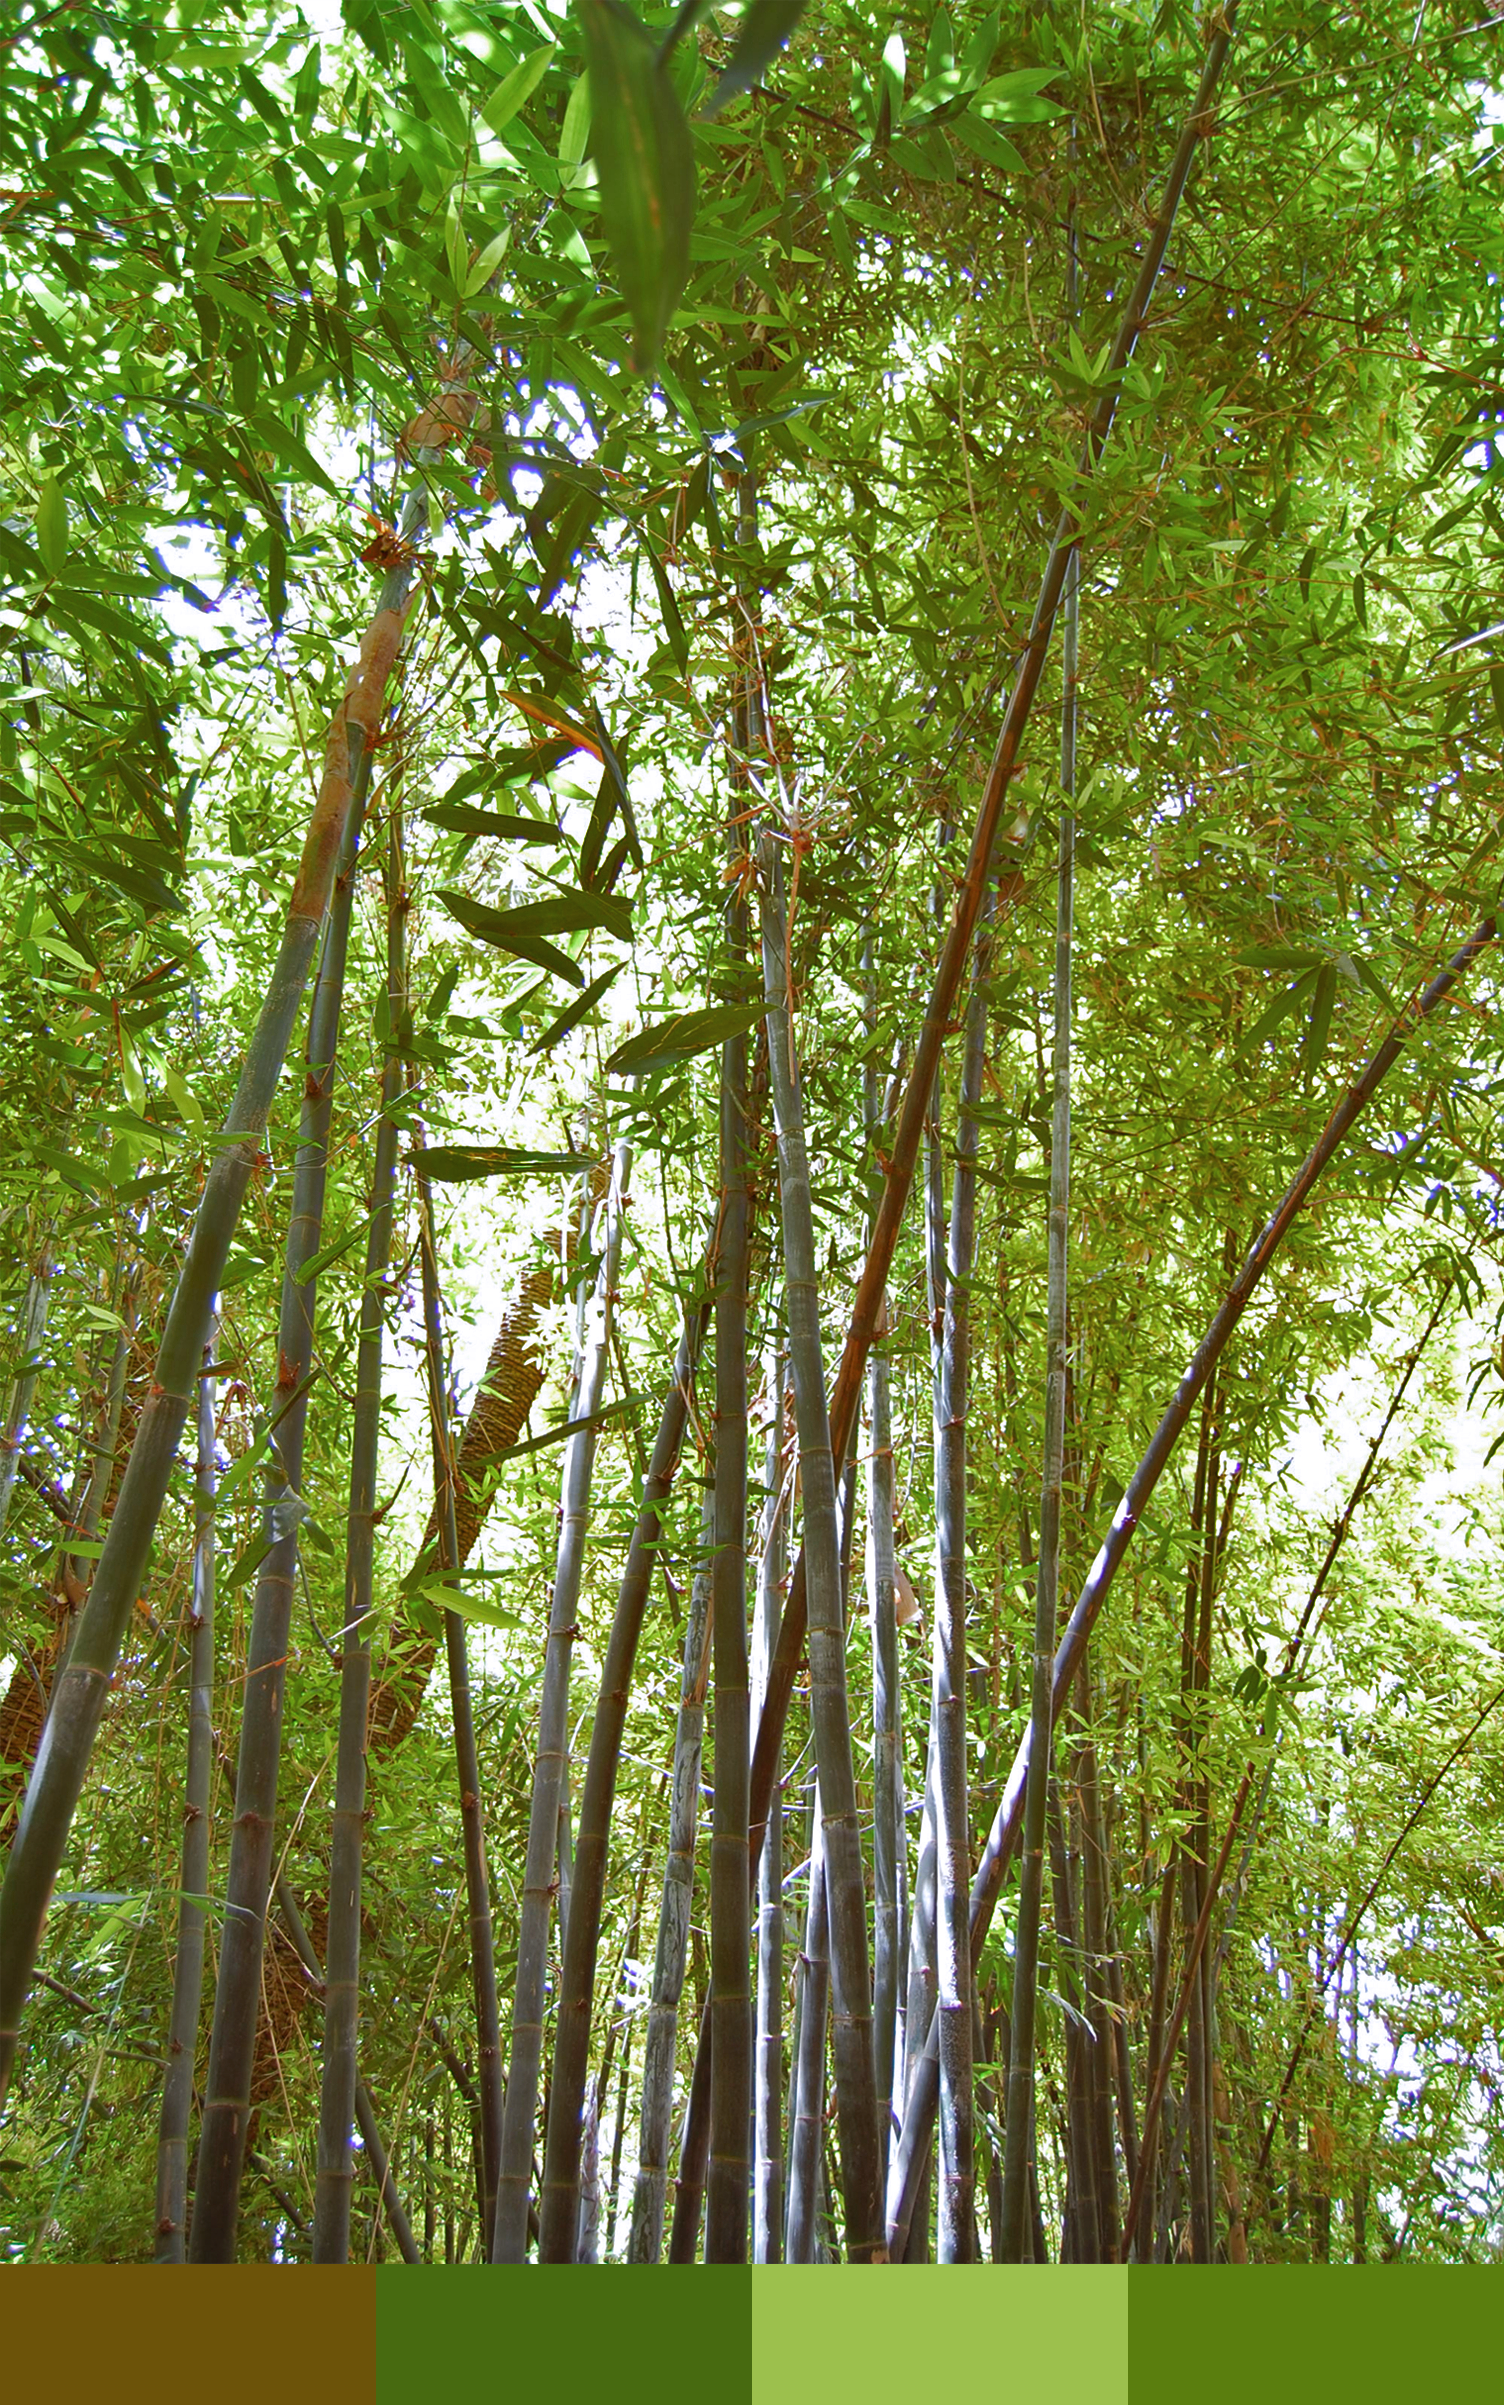 Summer Photo Palettes: Majorelle Garden Bamboo – NotManhattan